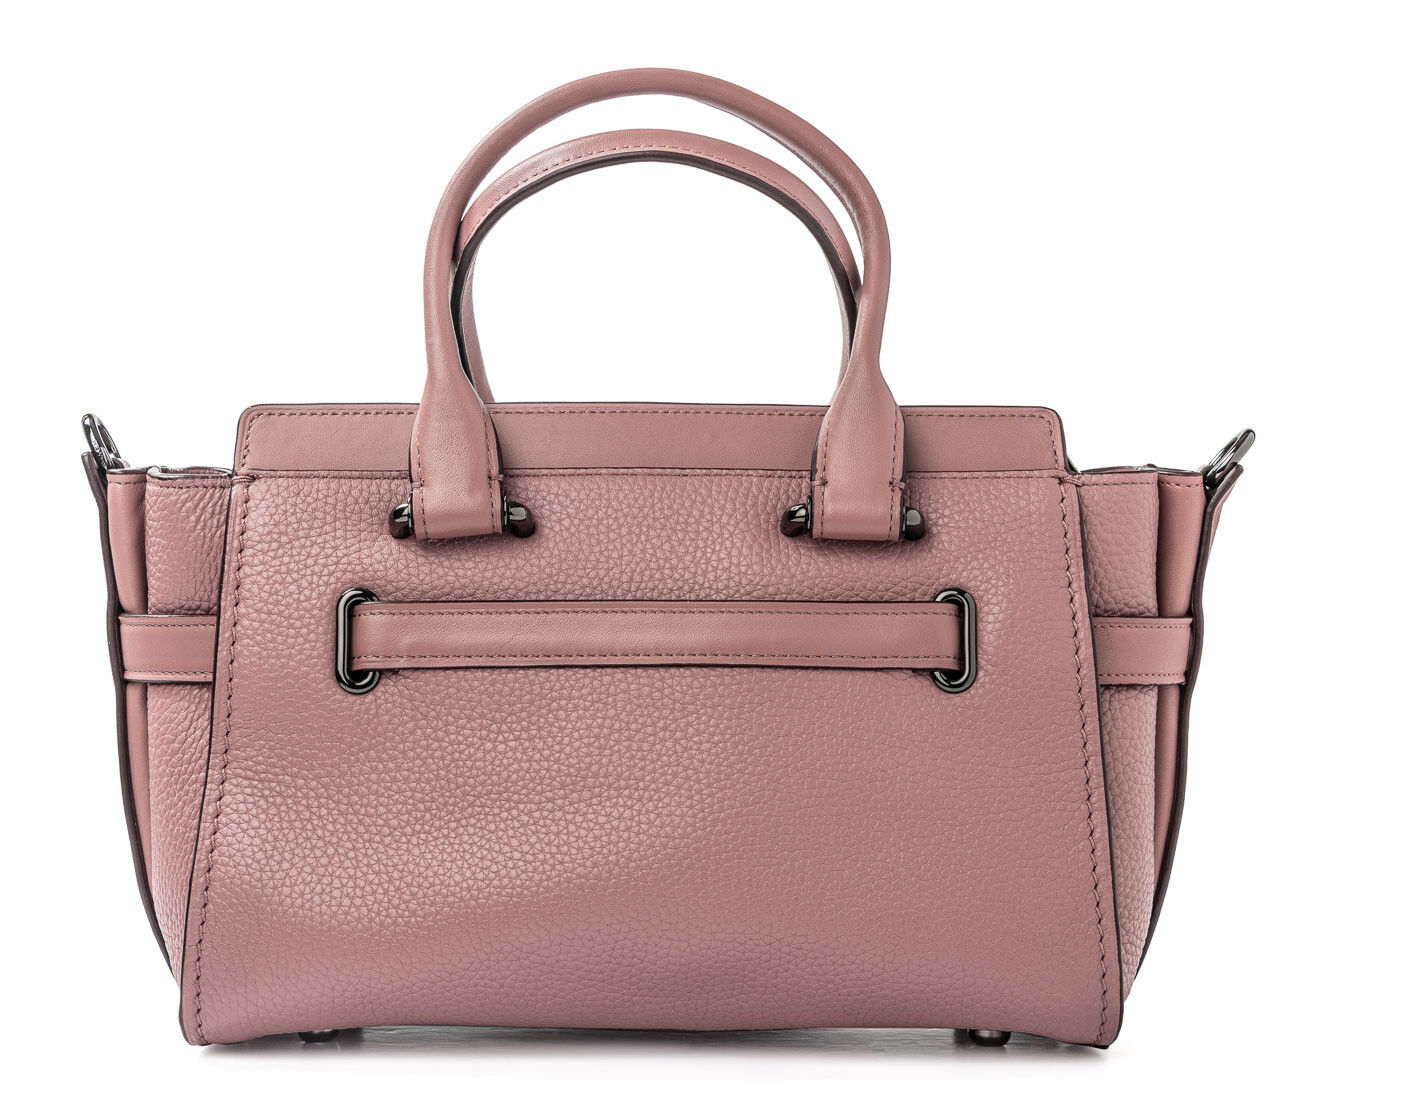 d9ebaf24eeaf1 Coach Swagger 27 Dusty Rose Pink Style 87295 Leather Handbag Bag for ...